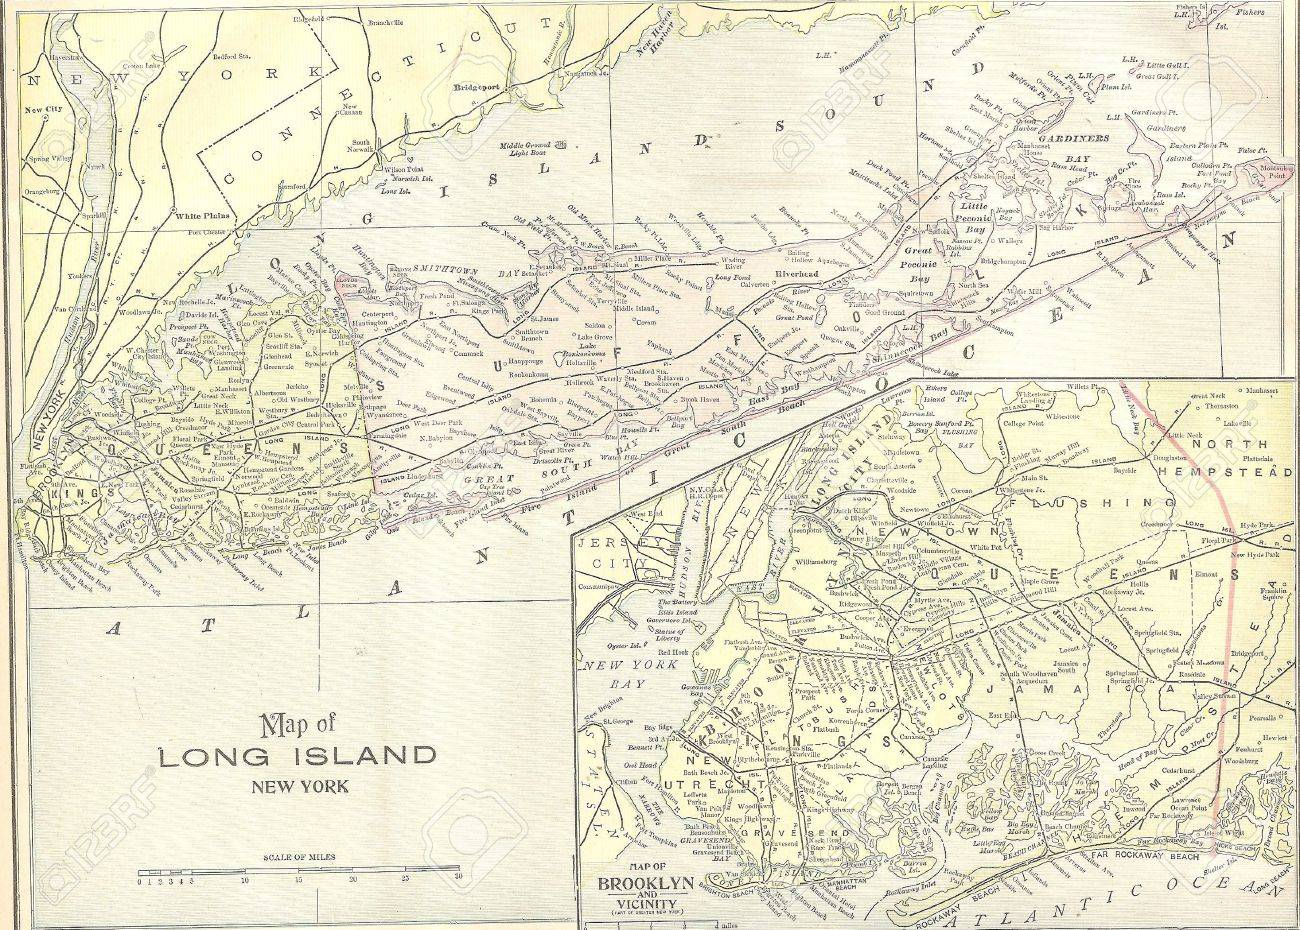 Vintage 1891 map of long island out of copyright from old atlas stock photo vintage 1891 map of long island out of copyright from old atlas of the world gumiabroncs Choice Image